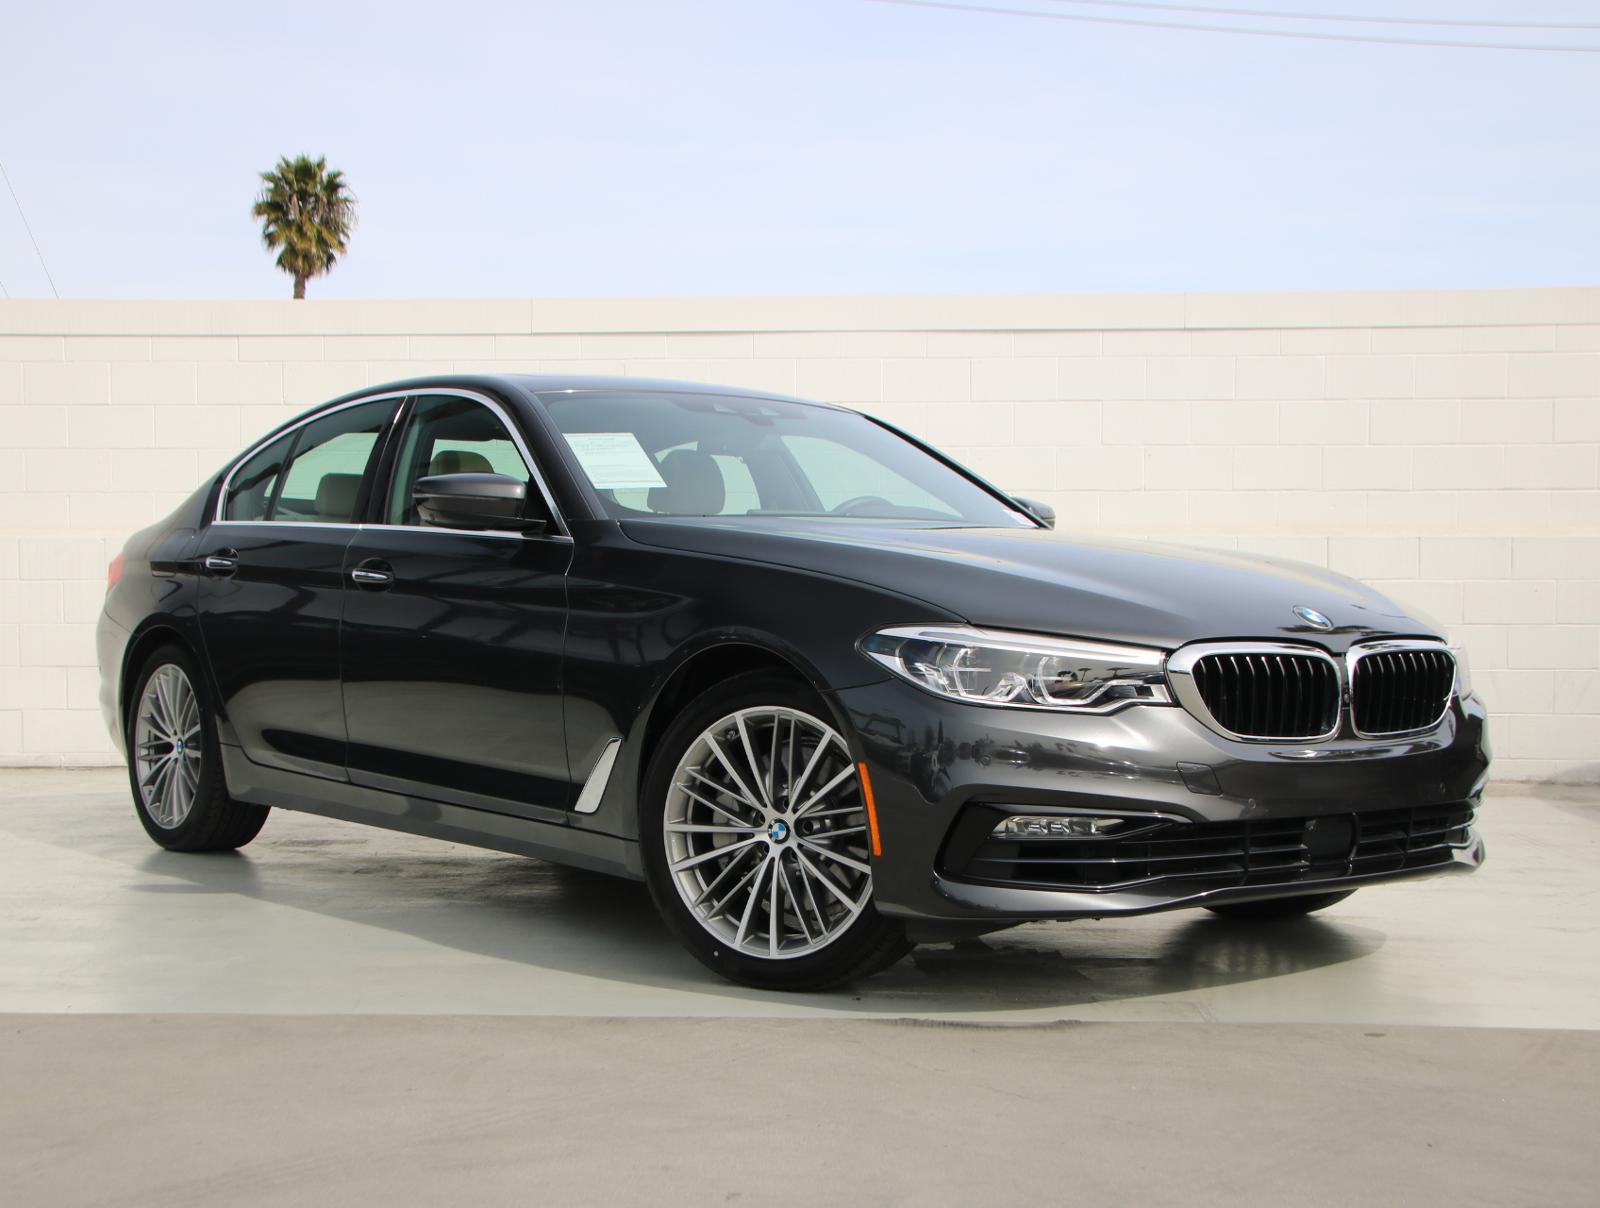 Pre-Owned 2018 BMW 5 Series 540i Rear Wheel Drive 540i Sedan